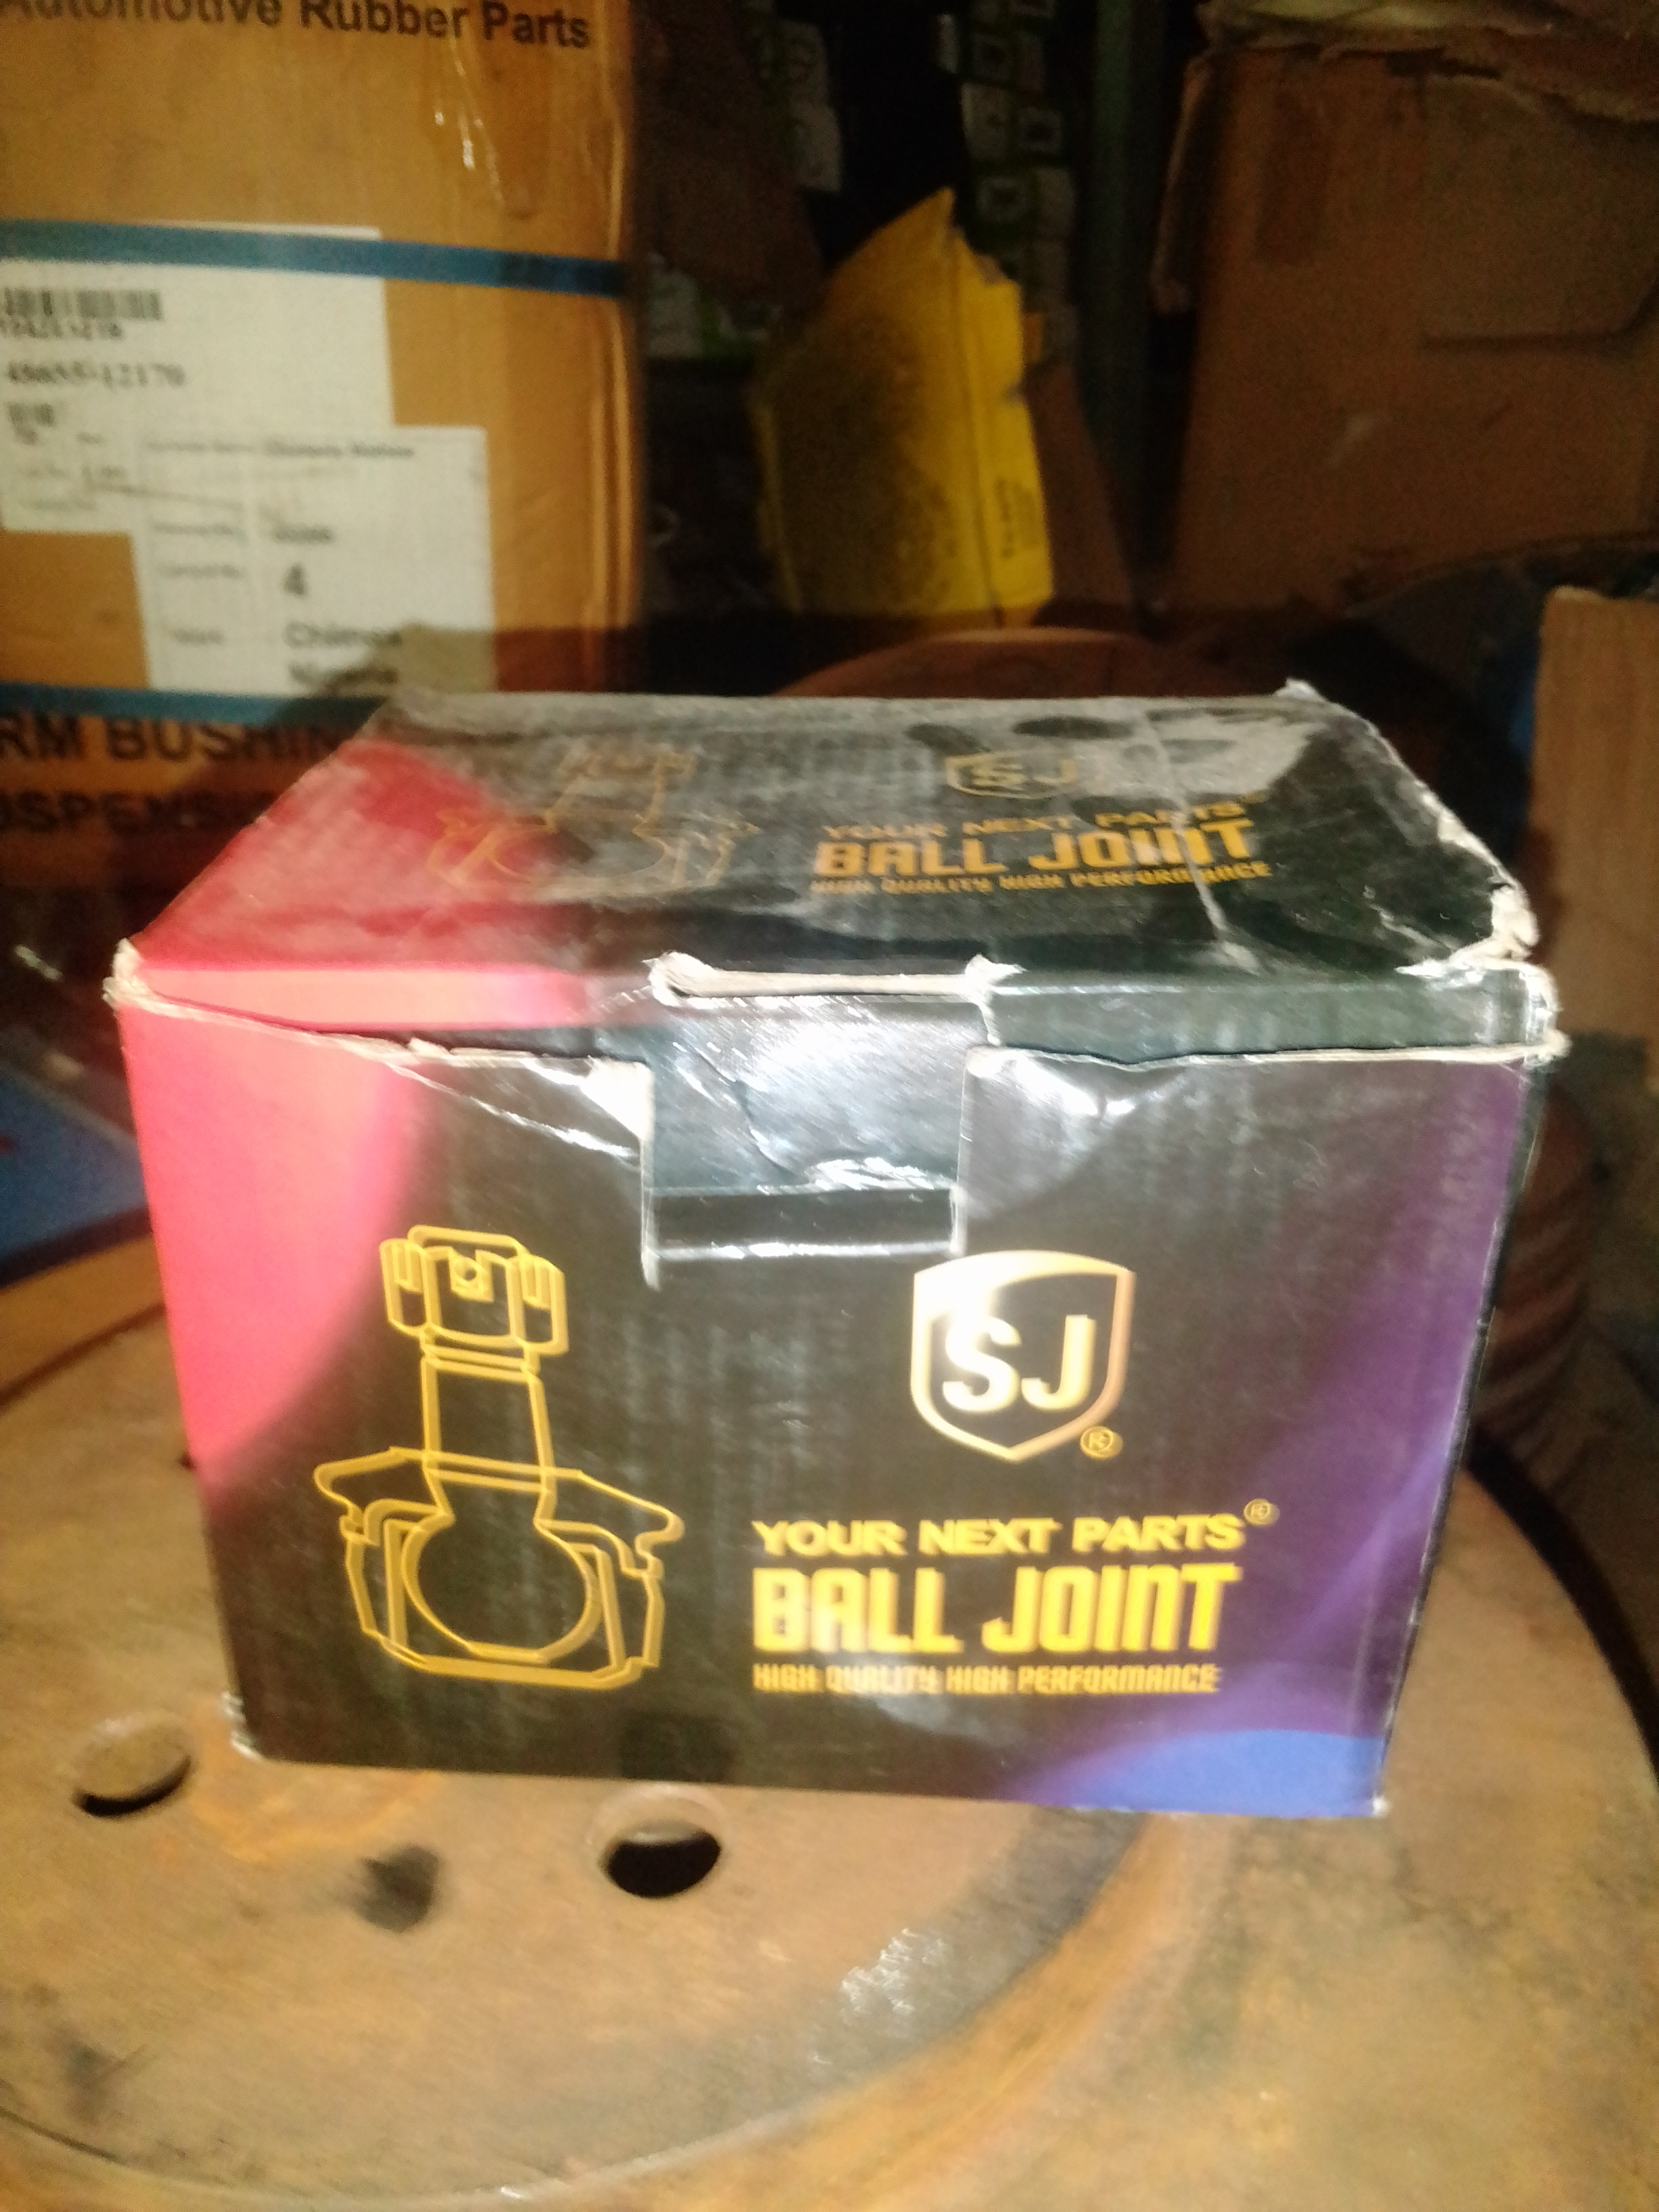 GENUINE OEM BALL JOINT